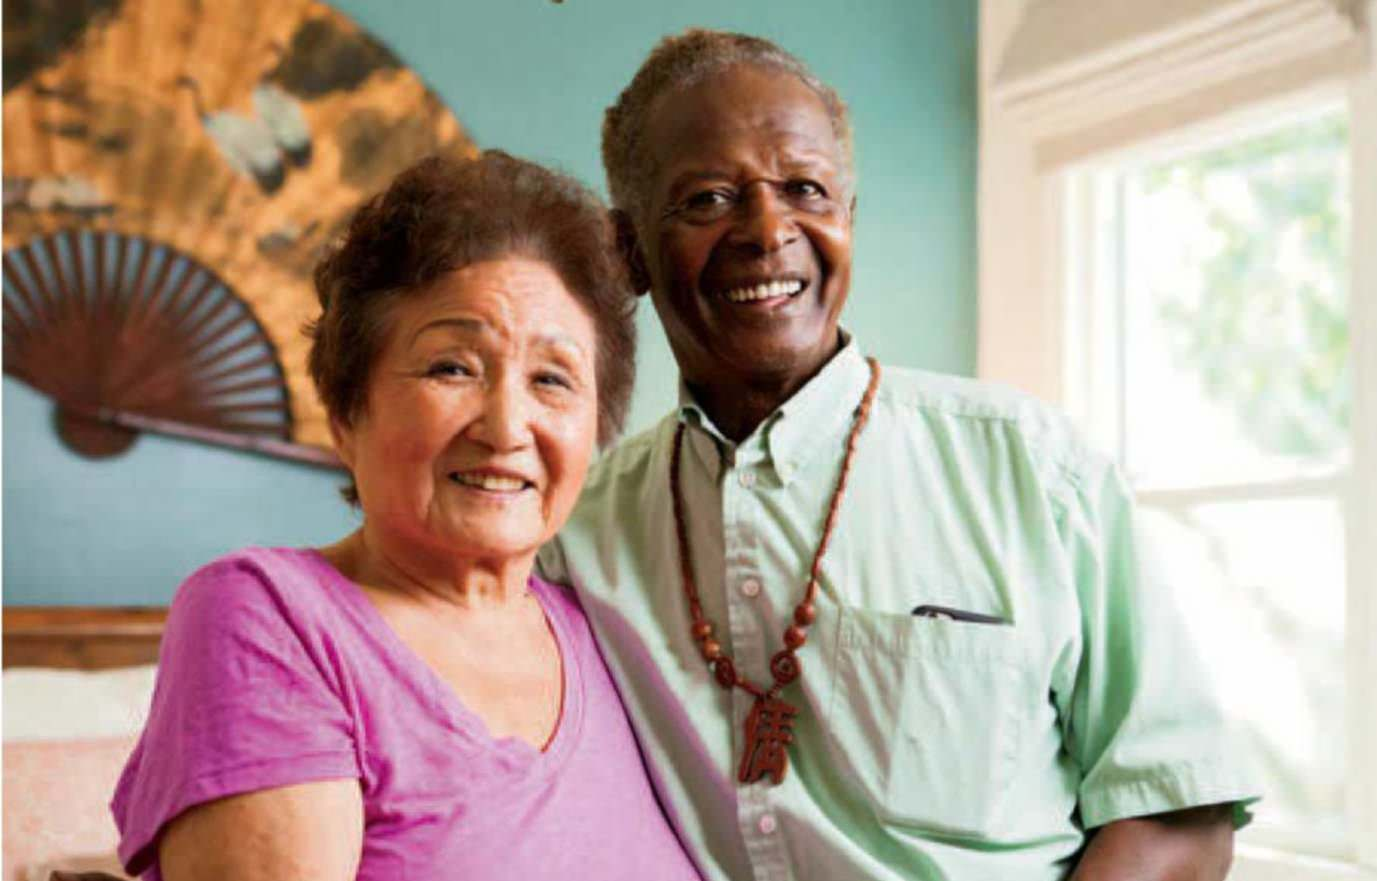 This Retires Couples Make $75,000 A Year As Airbnb Superhosts